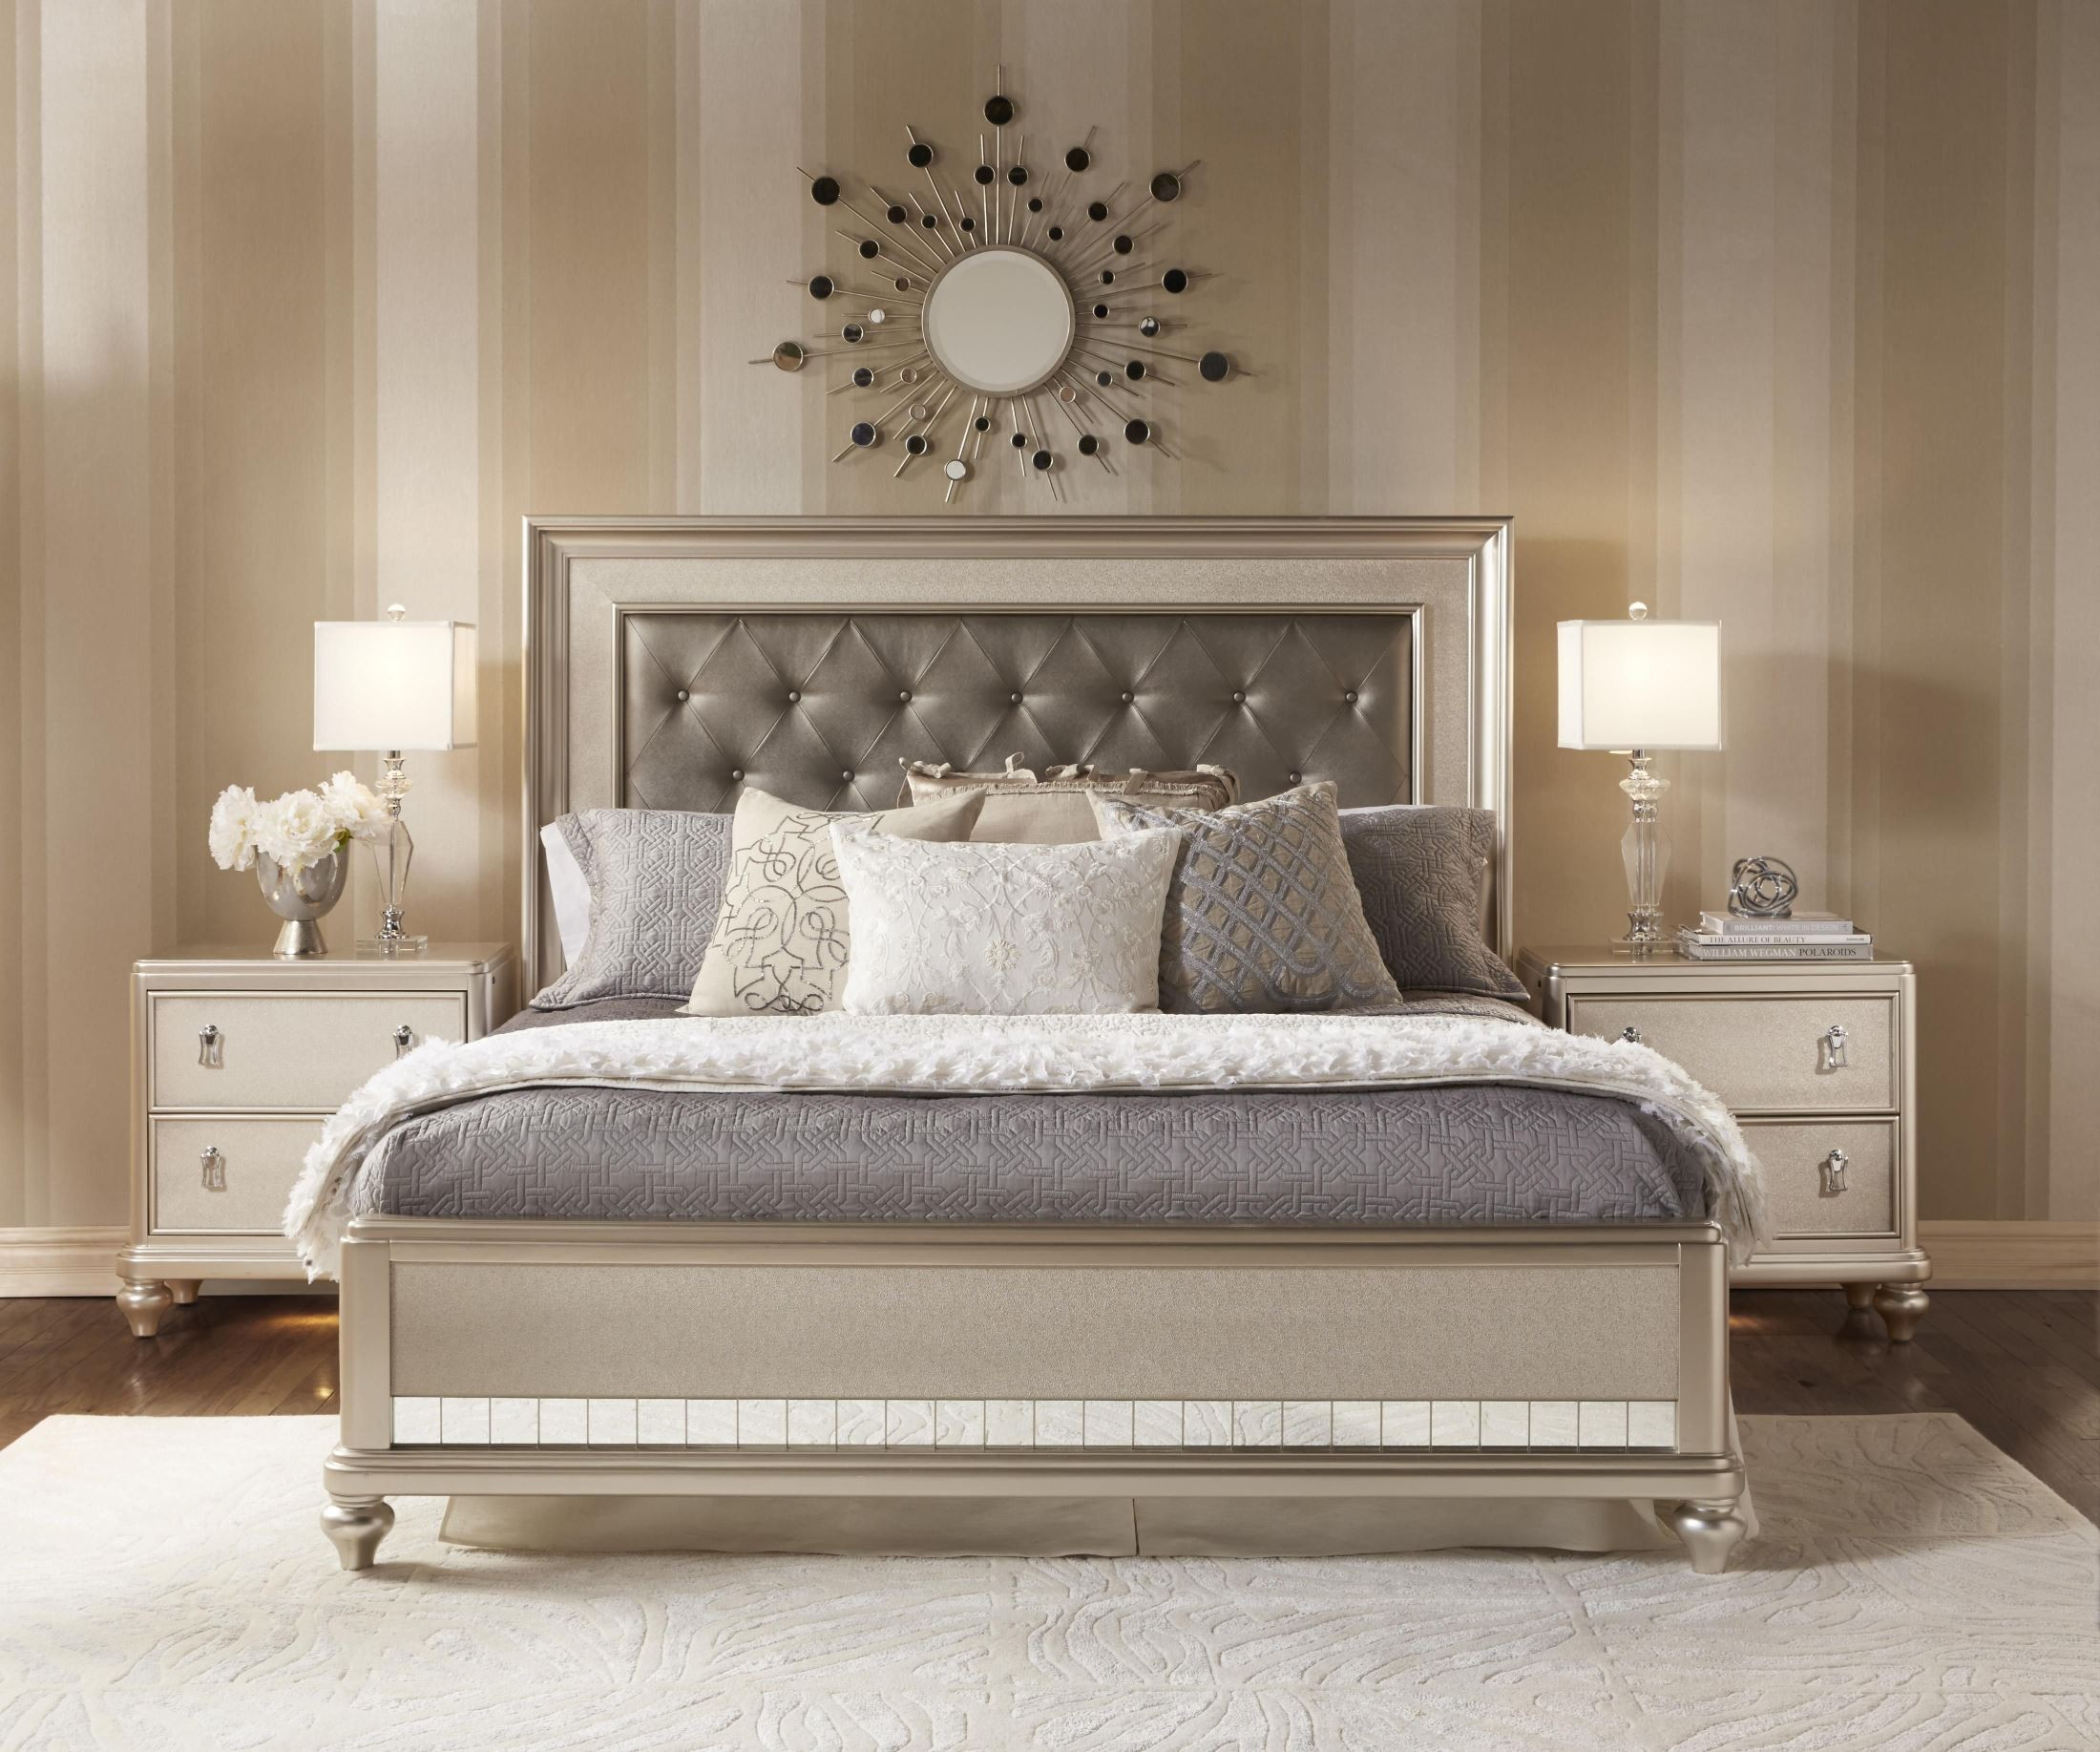 White Queen Bedroom Set Diva Panel Bedroom Set From Samuel Lawrence 8808 255 257